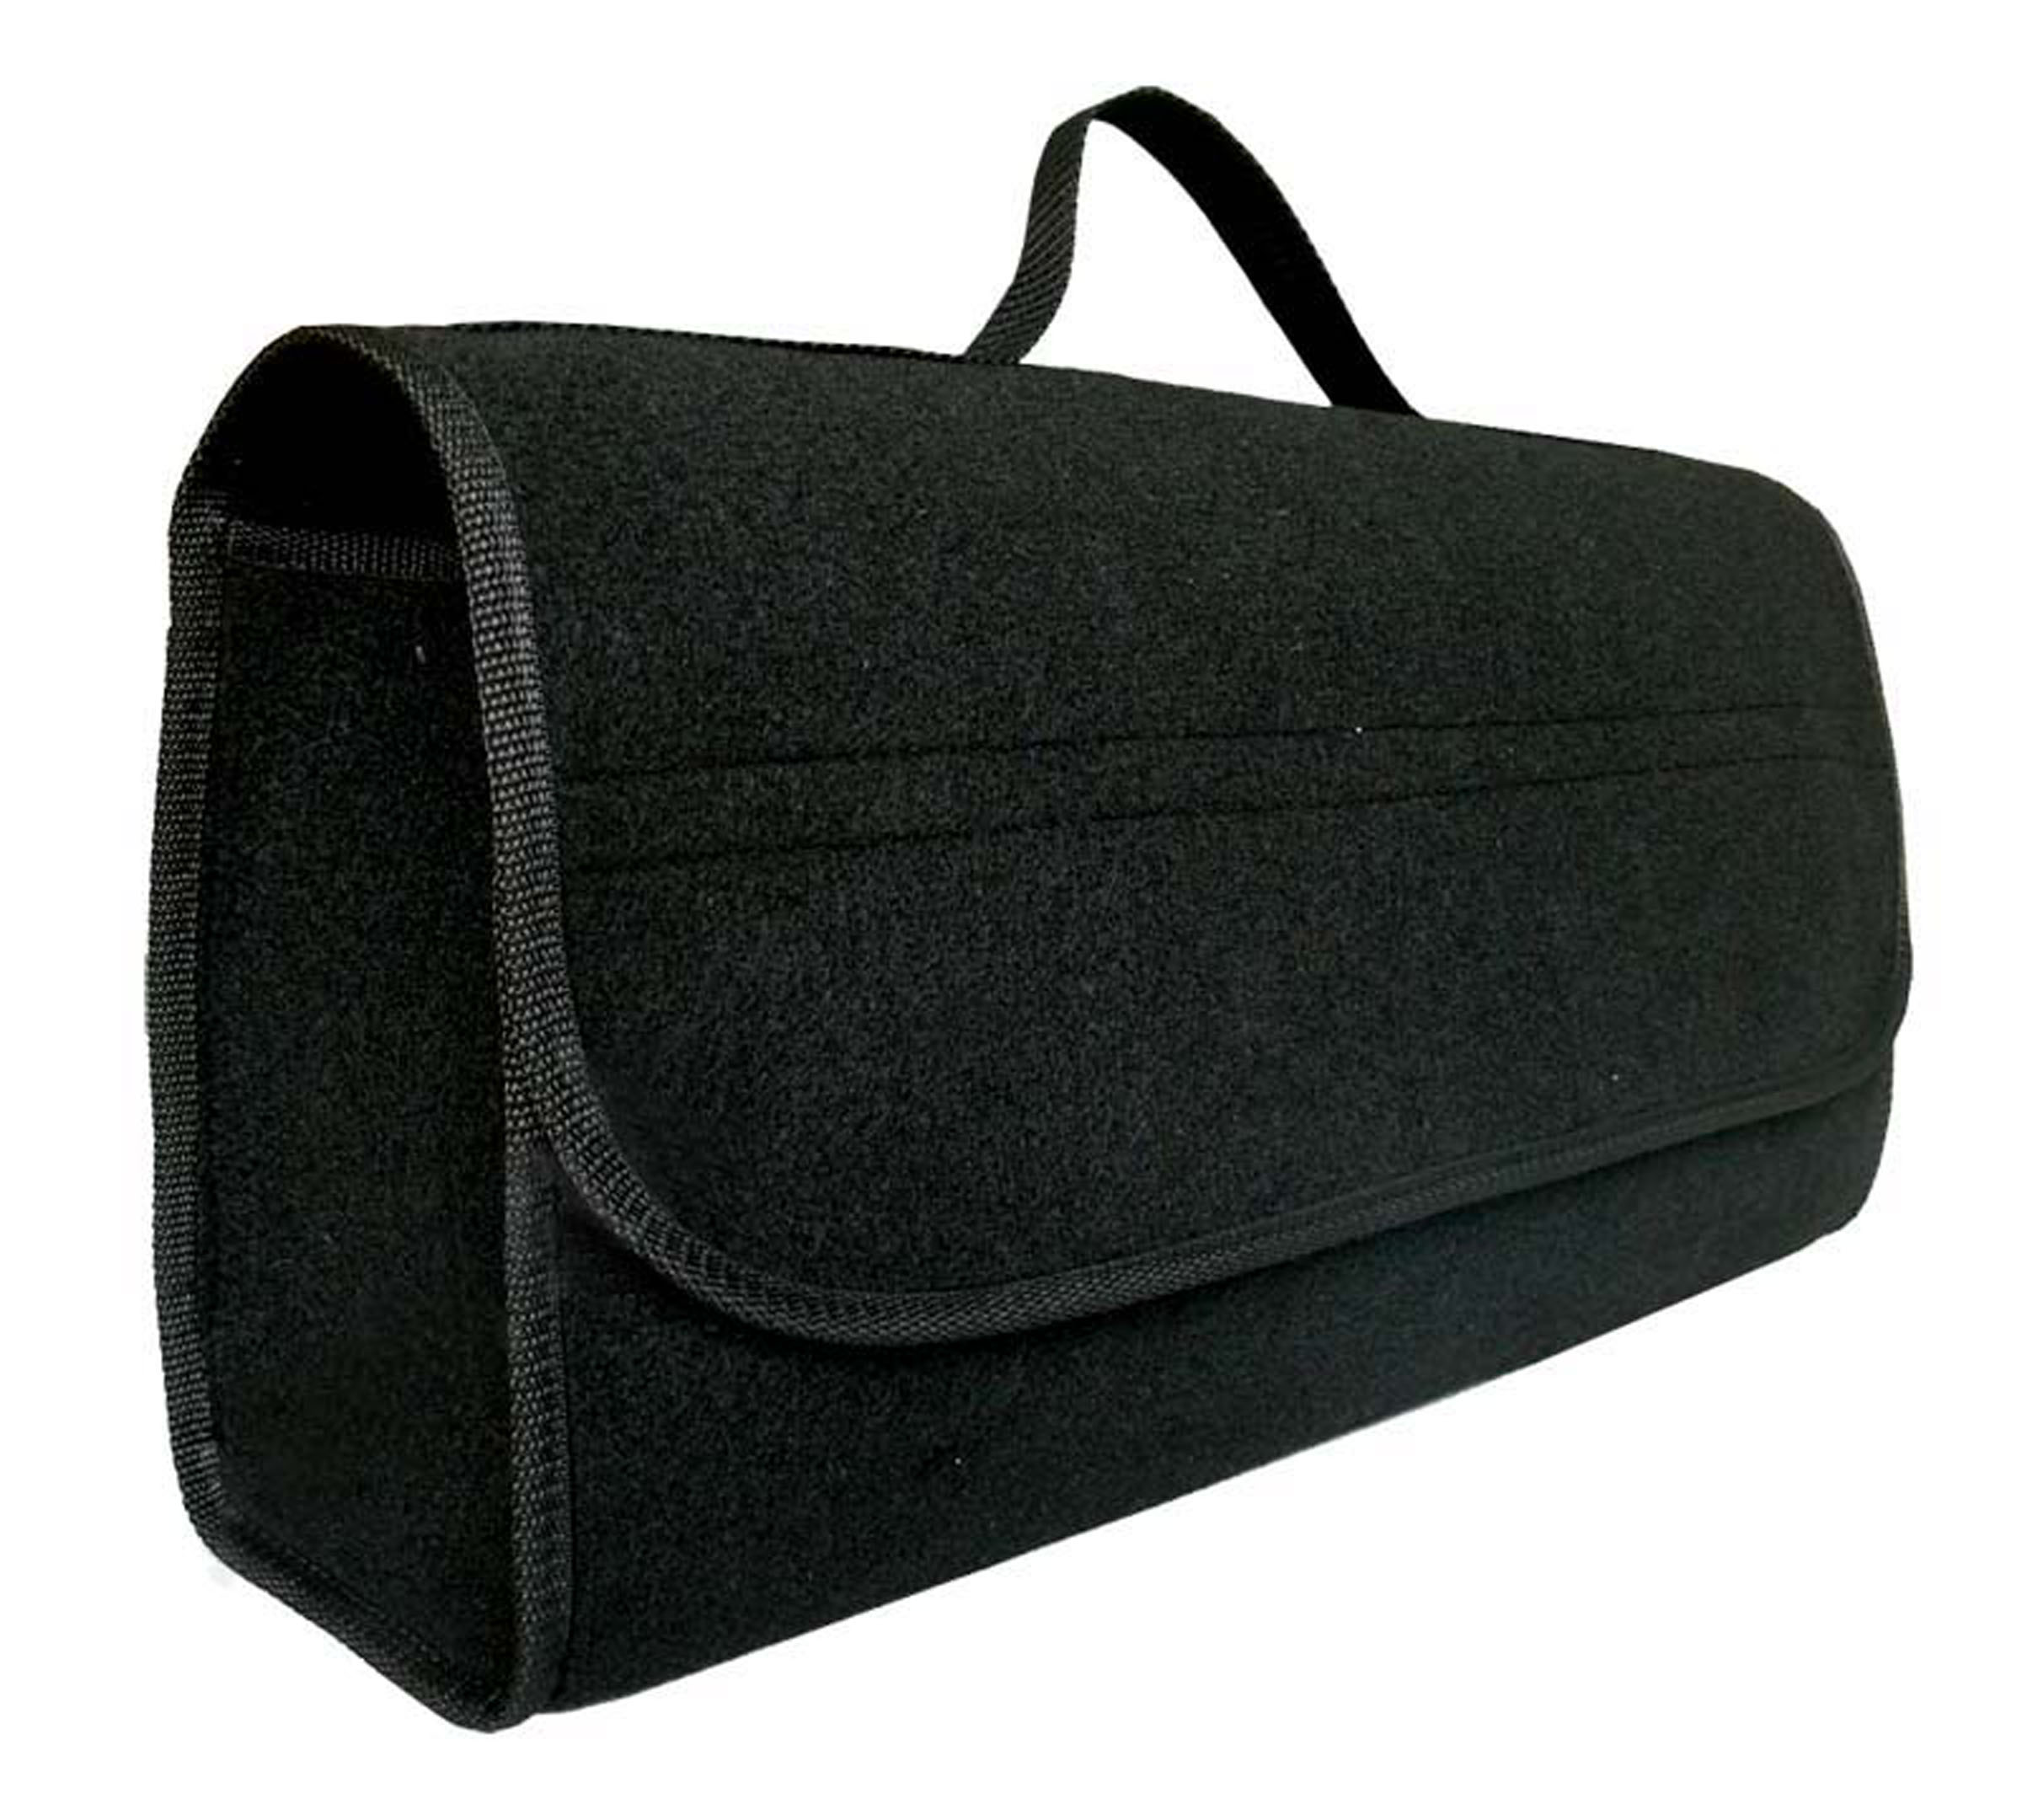 BAG * CASE * TRUNK ORGANIZER продажа